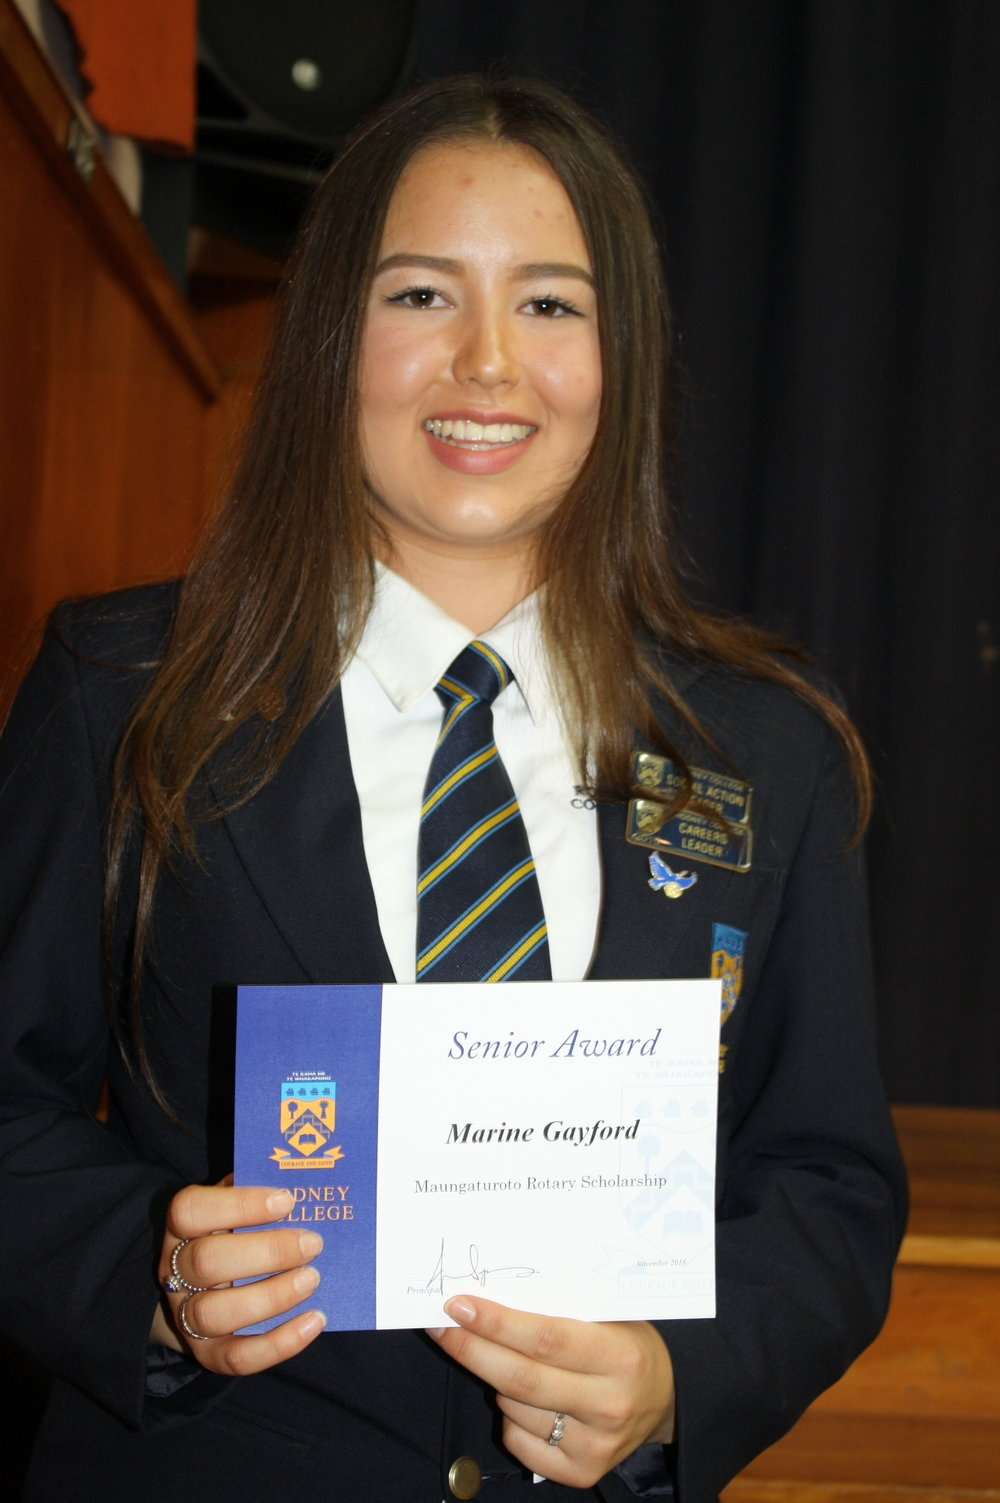 Marine Gayford - winner of 3 scholarships